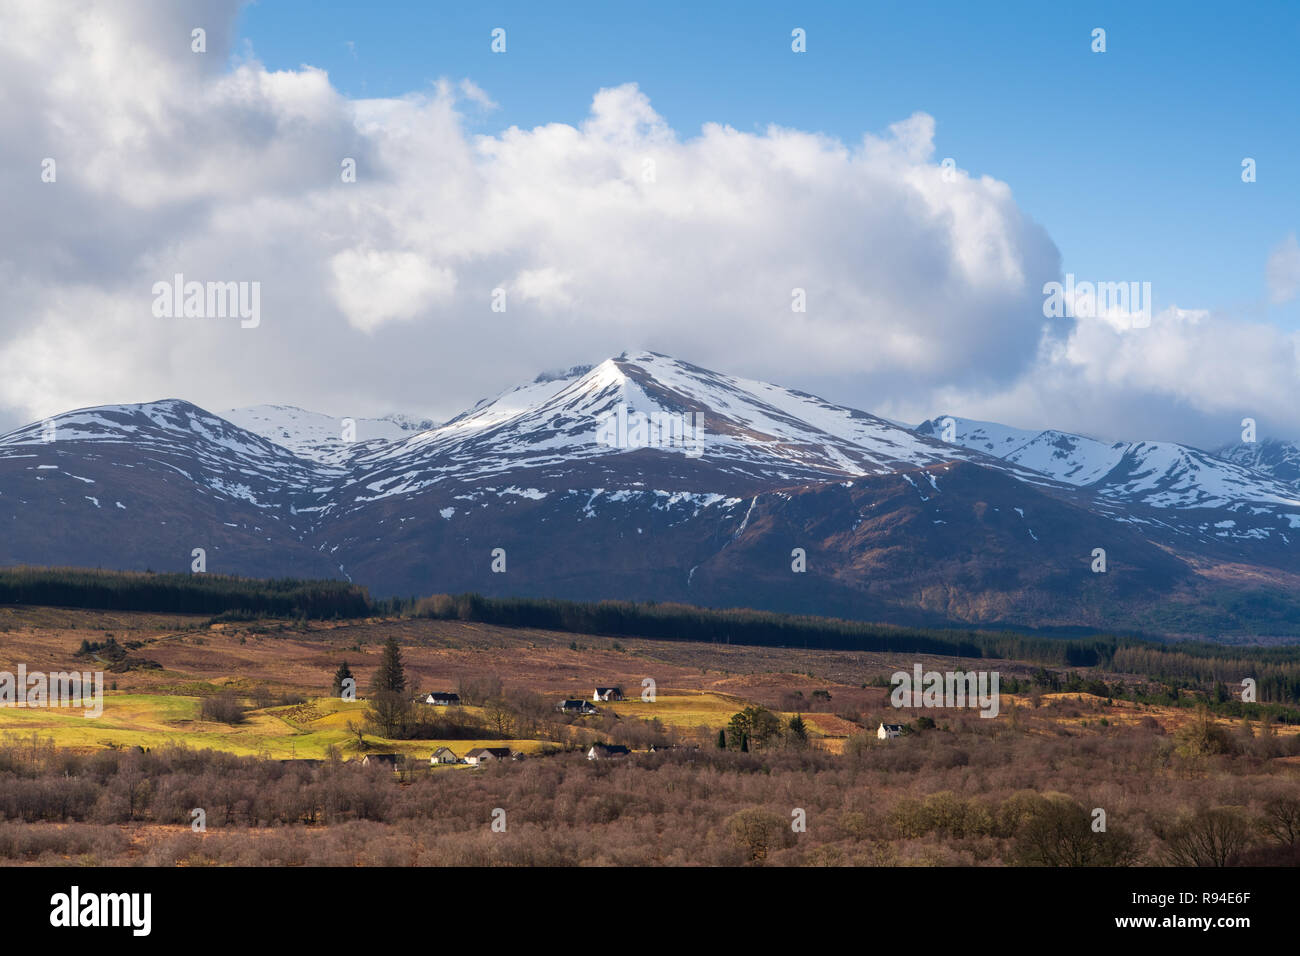 Scottish Highlands overlooking an autumn coloured valley. - Stock Image